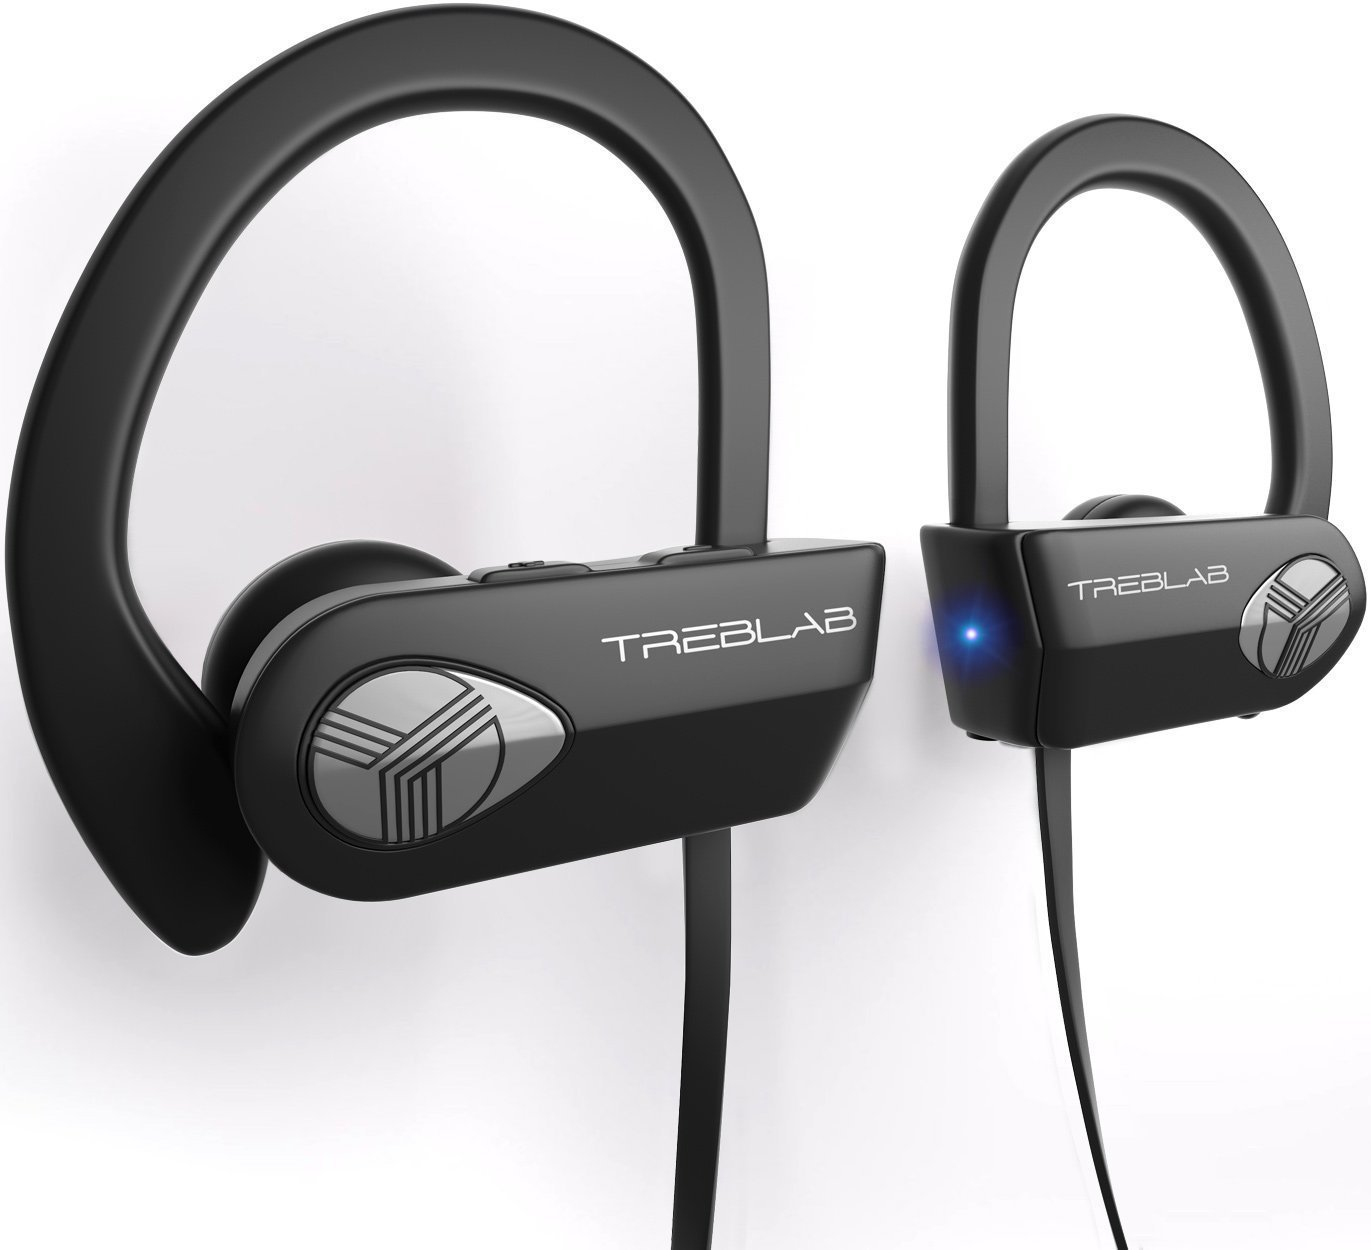 TREBLAB XR500 Bluetooth Headphones, Wireless Earbuds for Sports, Running or Gym Workout. 2017 Updated Version. IPX7 Waterproof, Sweatproof, Secure-Fit Headset. Noise Cancelling Earphones w/ Mic